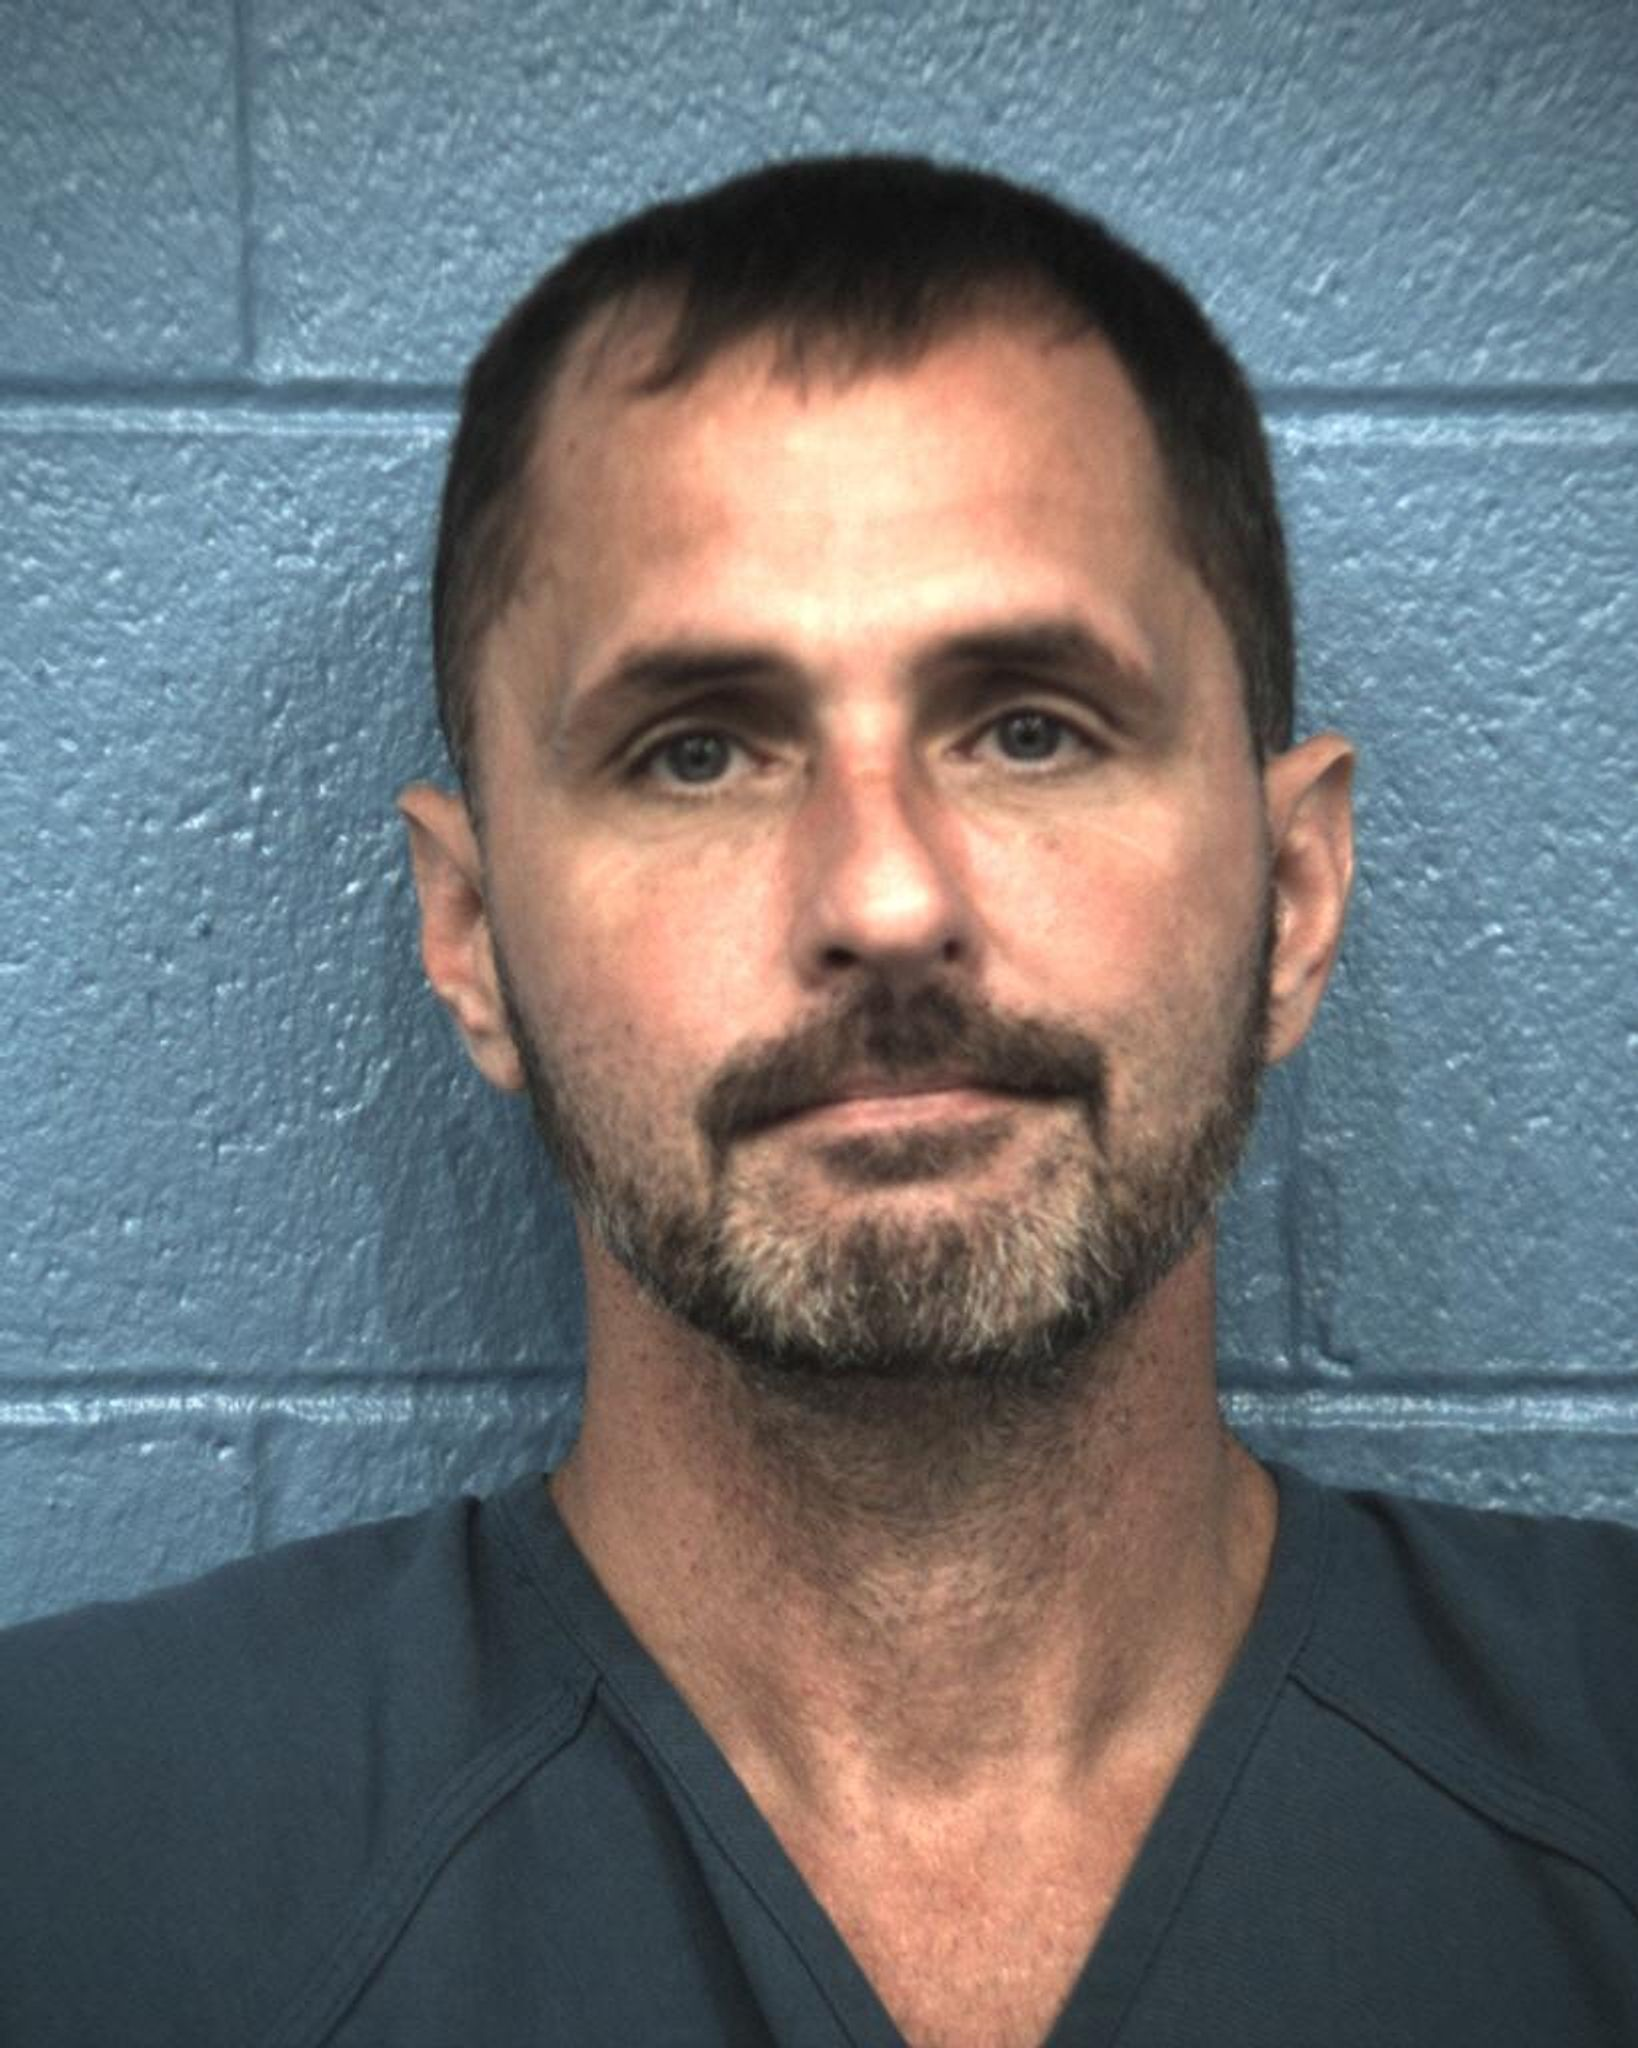 Jimmy Causey South Carolina inmate captured in Texas after second